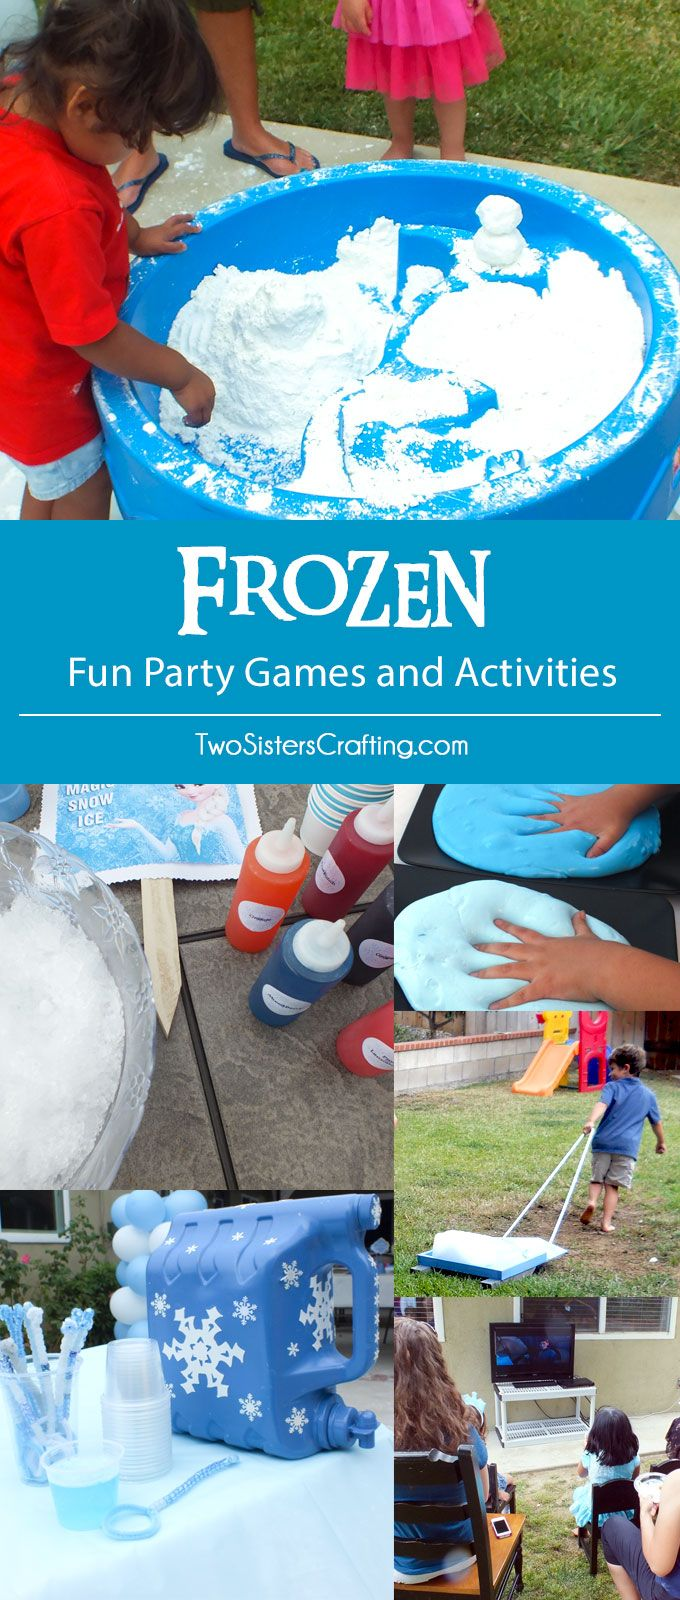 Disney Frozen Party Games and Activities Throwing a Frozen